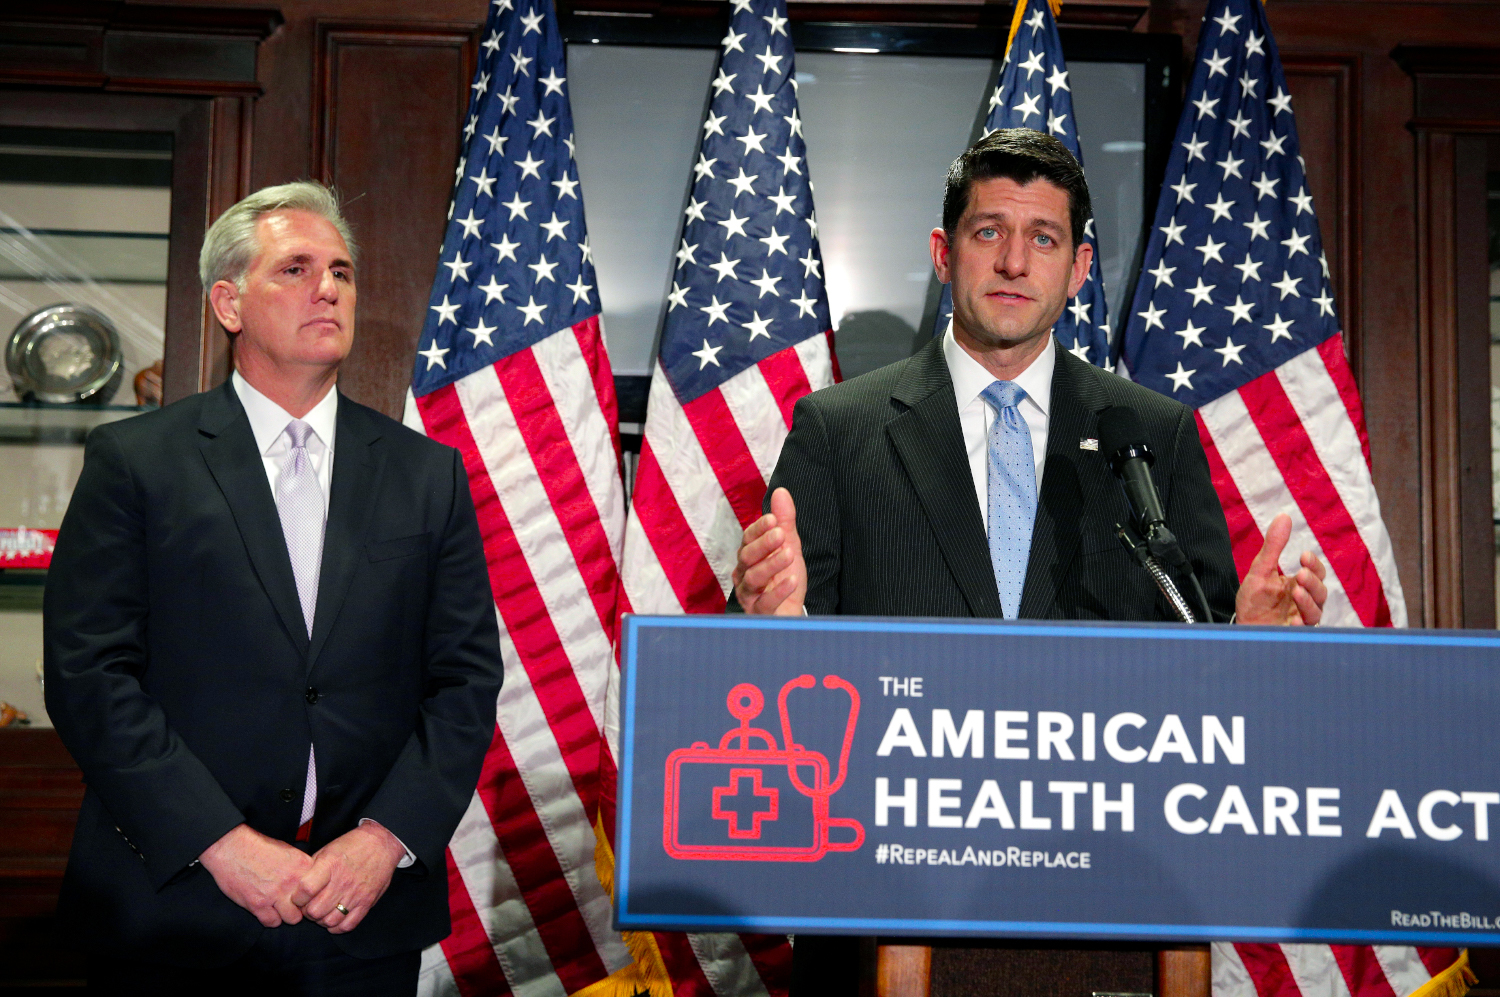 House Speaker Paul Ryan (R-WI) and House Majority Leader Kevin McCarthy (R-SC) discuss the American Health Care Act